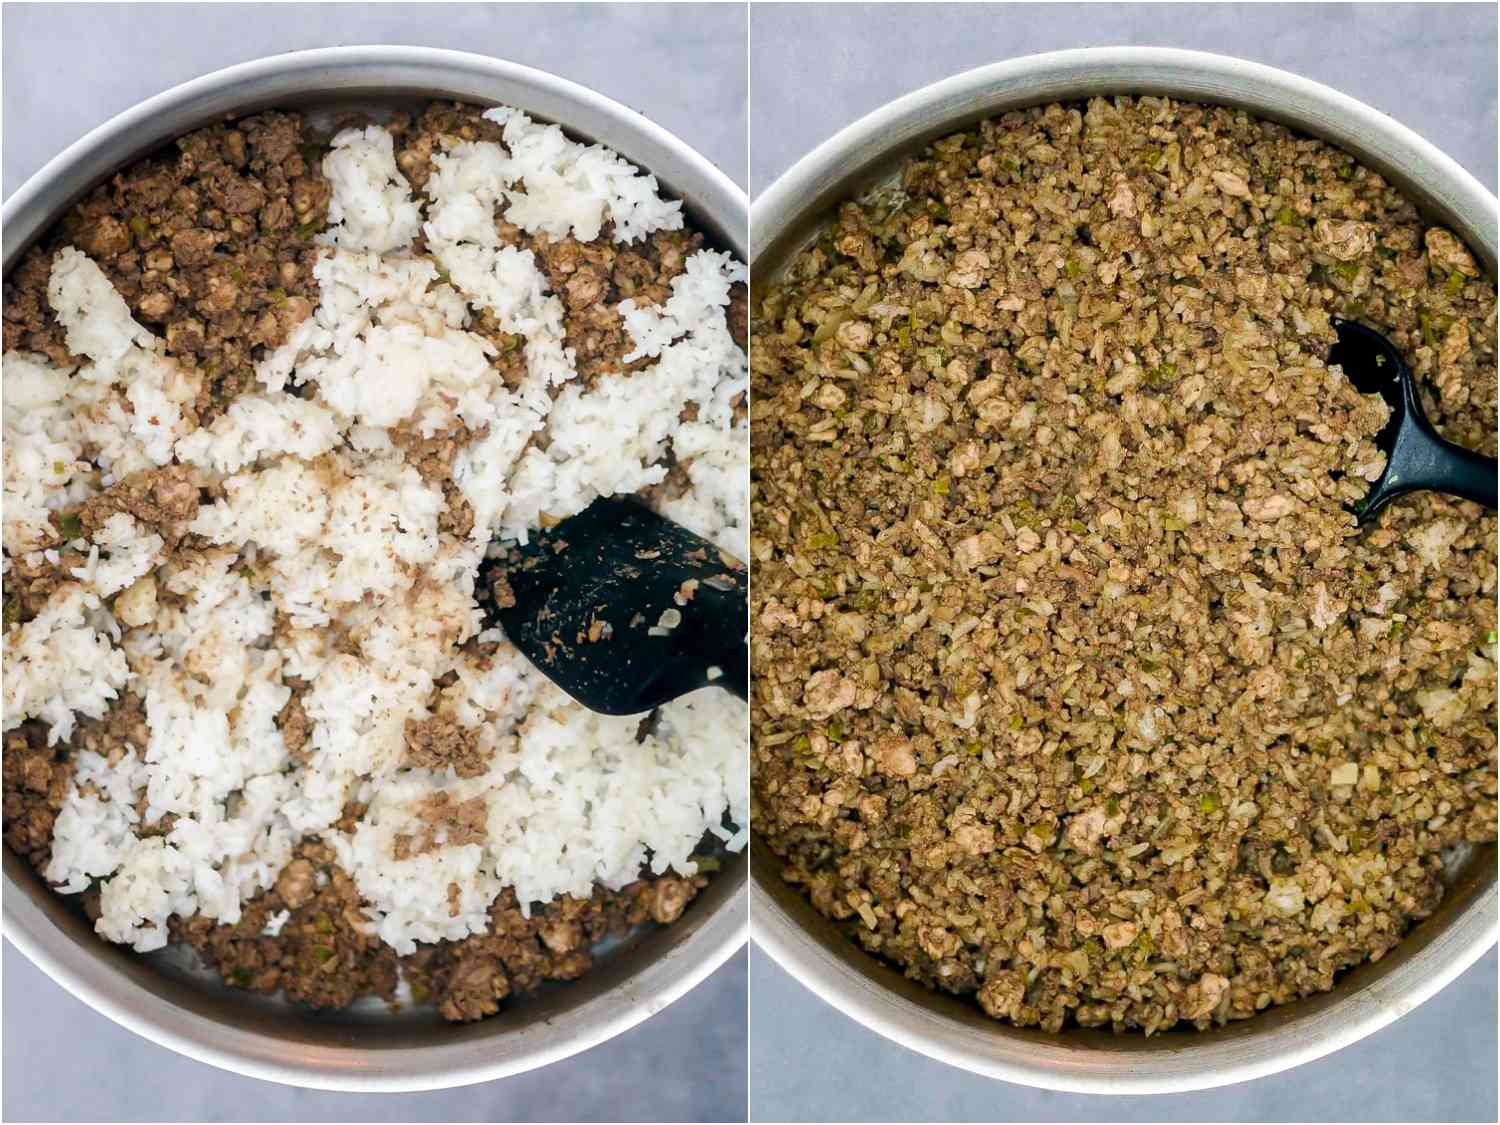 cooked rice added to skillet and mixed in, turning an even brown color